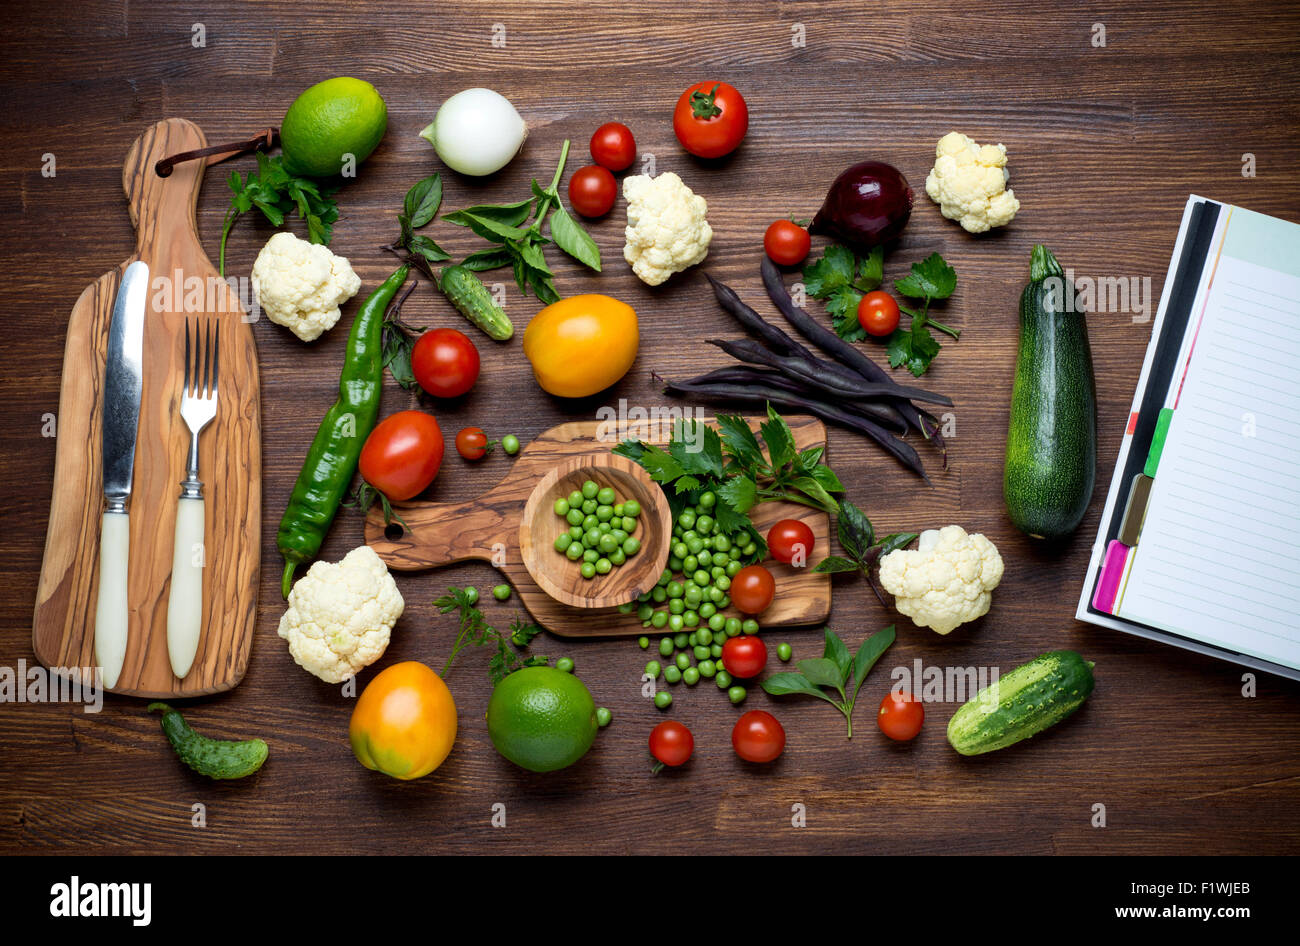 Healthy food herbs and vegetables on wooden table with recipe book healthy food herbs and vegetables on wooden table with recipe book top view forumfinder Image collections